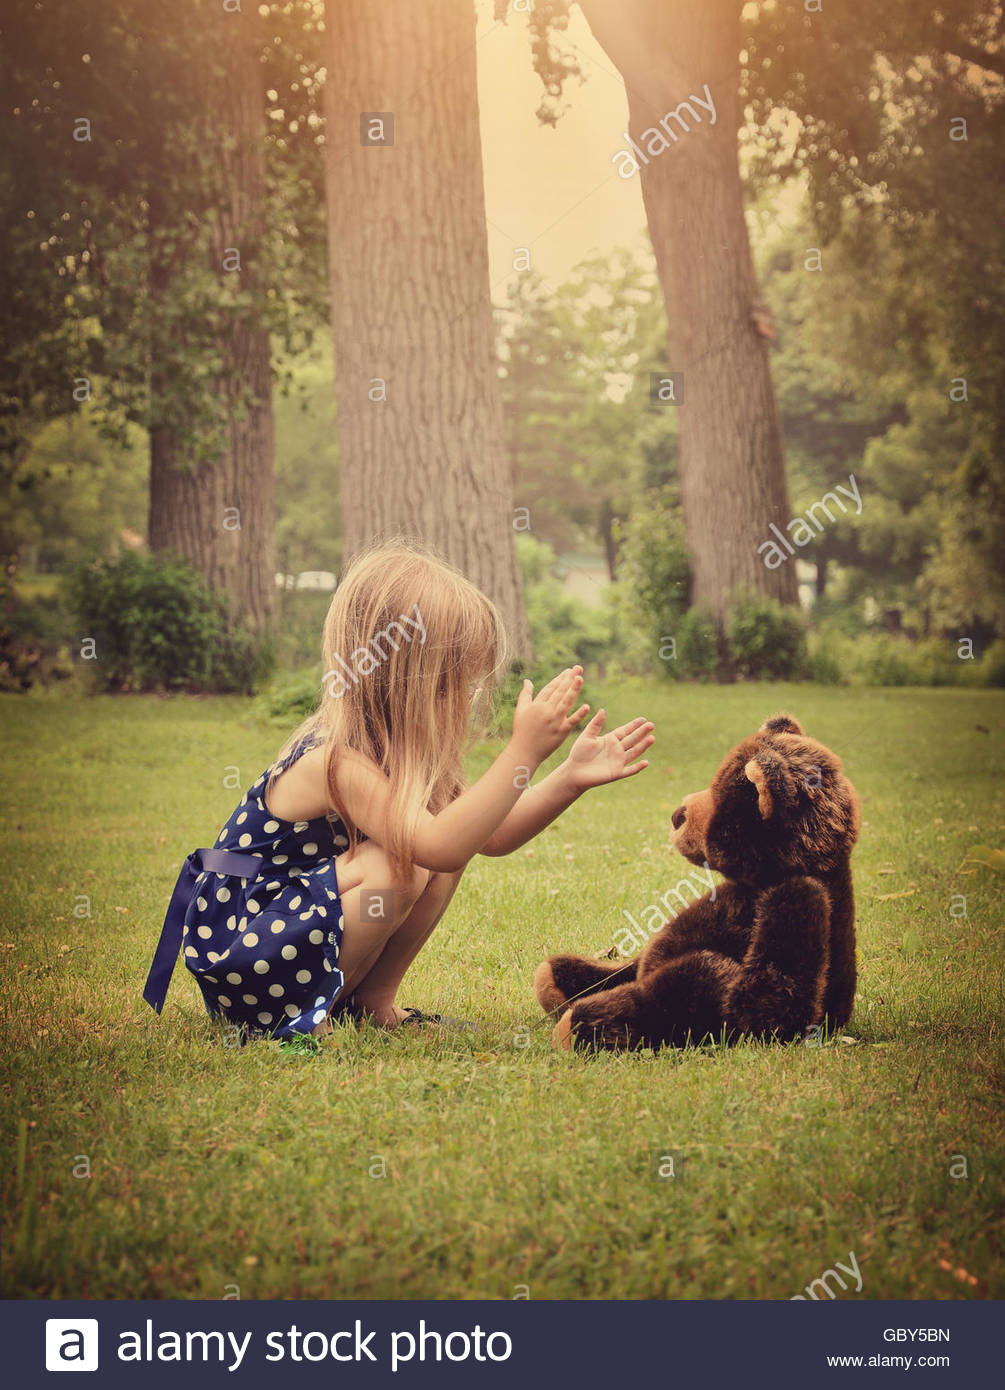 A little girl is clapping her hands and playing with a teddy bear outside at a park for a friendship or imagination - Stock Image